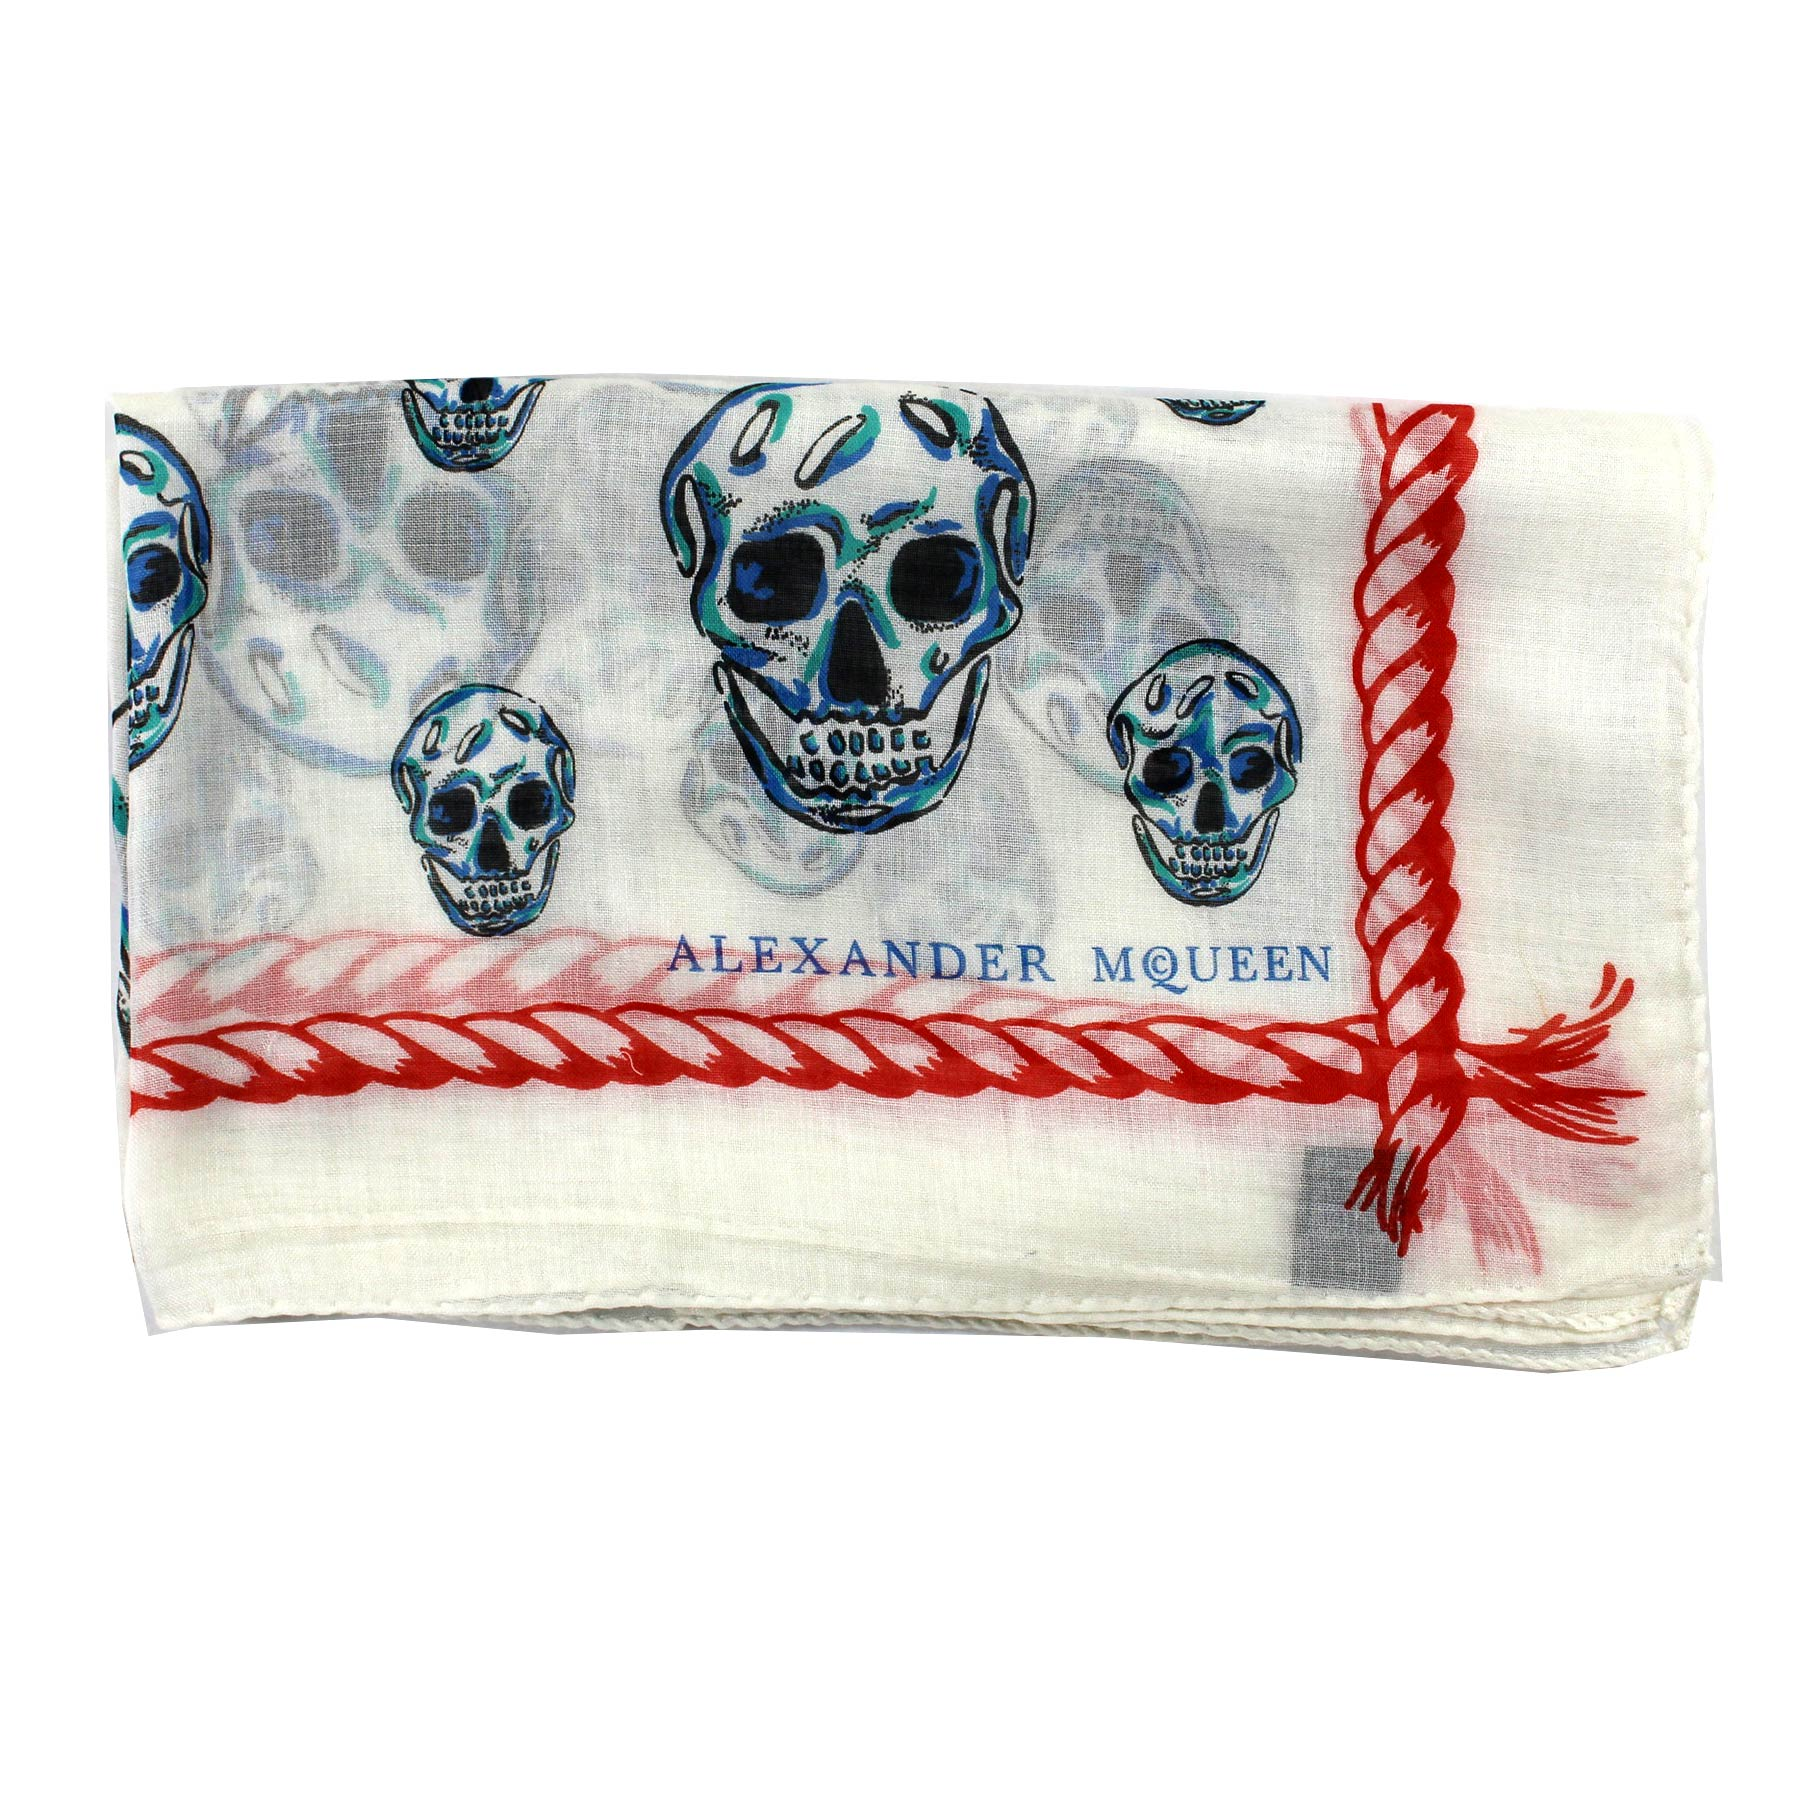 Alexander McQueen Scarf White Skulls - Large Square Cotton Scarf